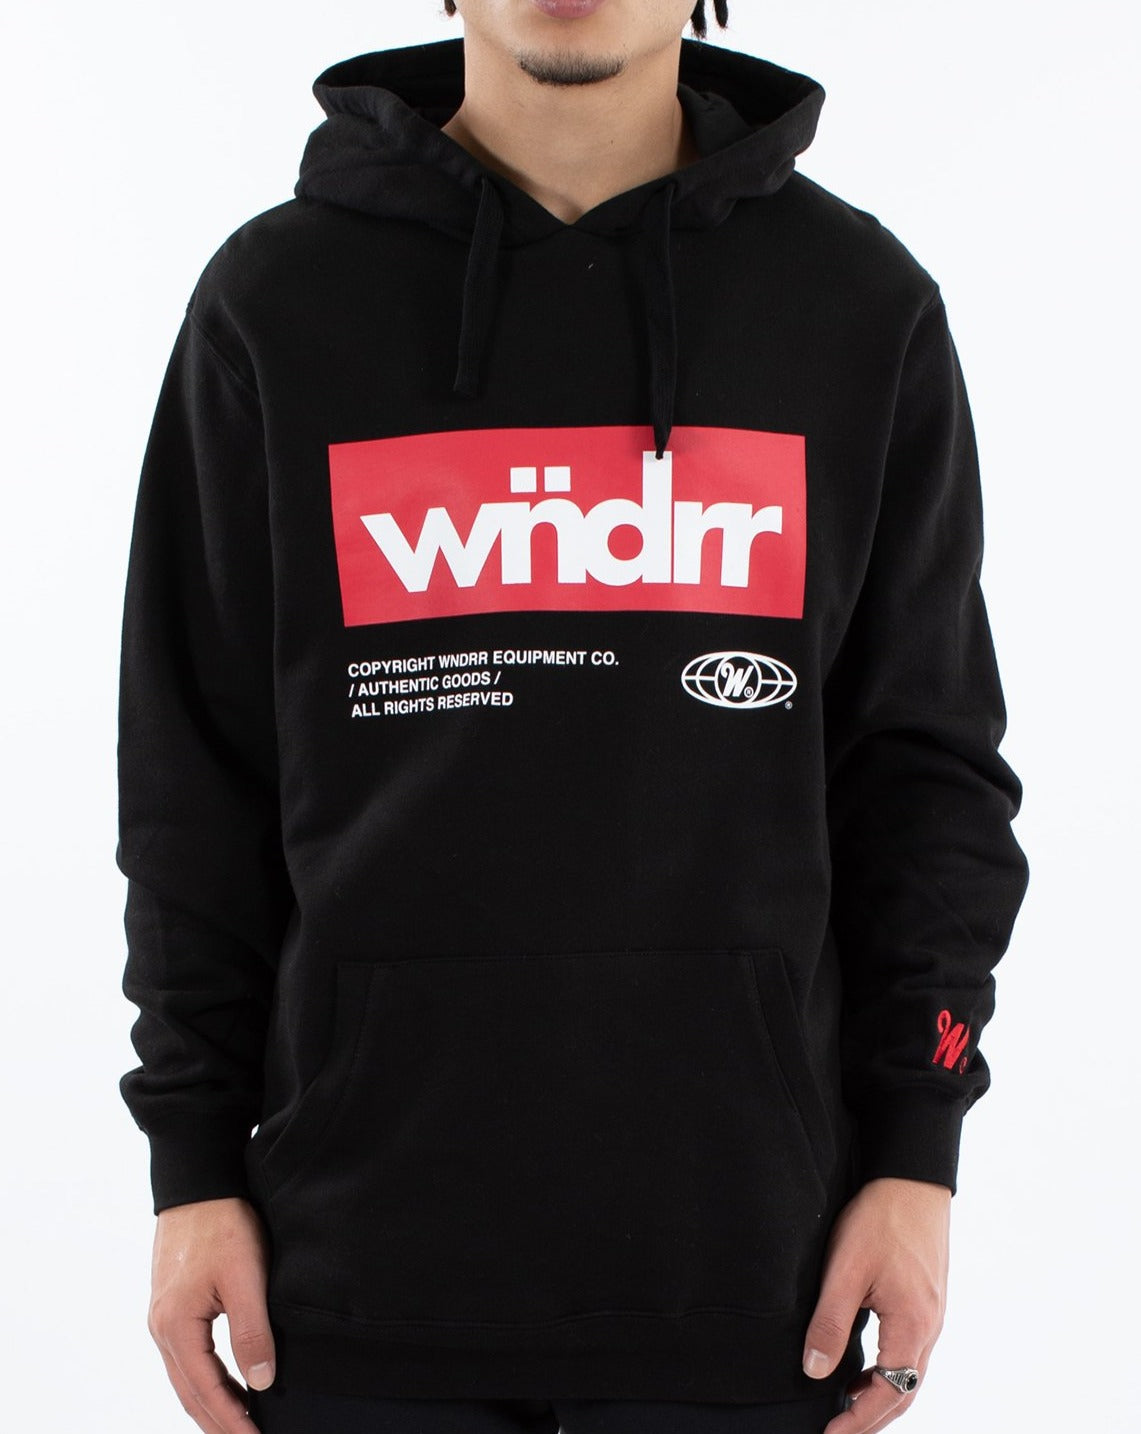 WNDRR Manifest Hood Sweat - Black